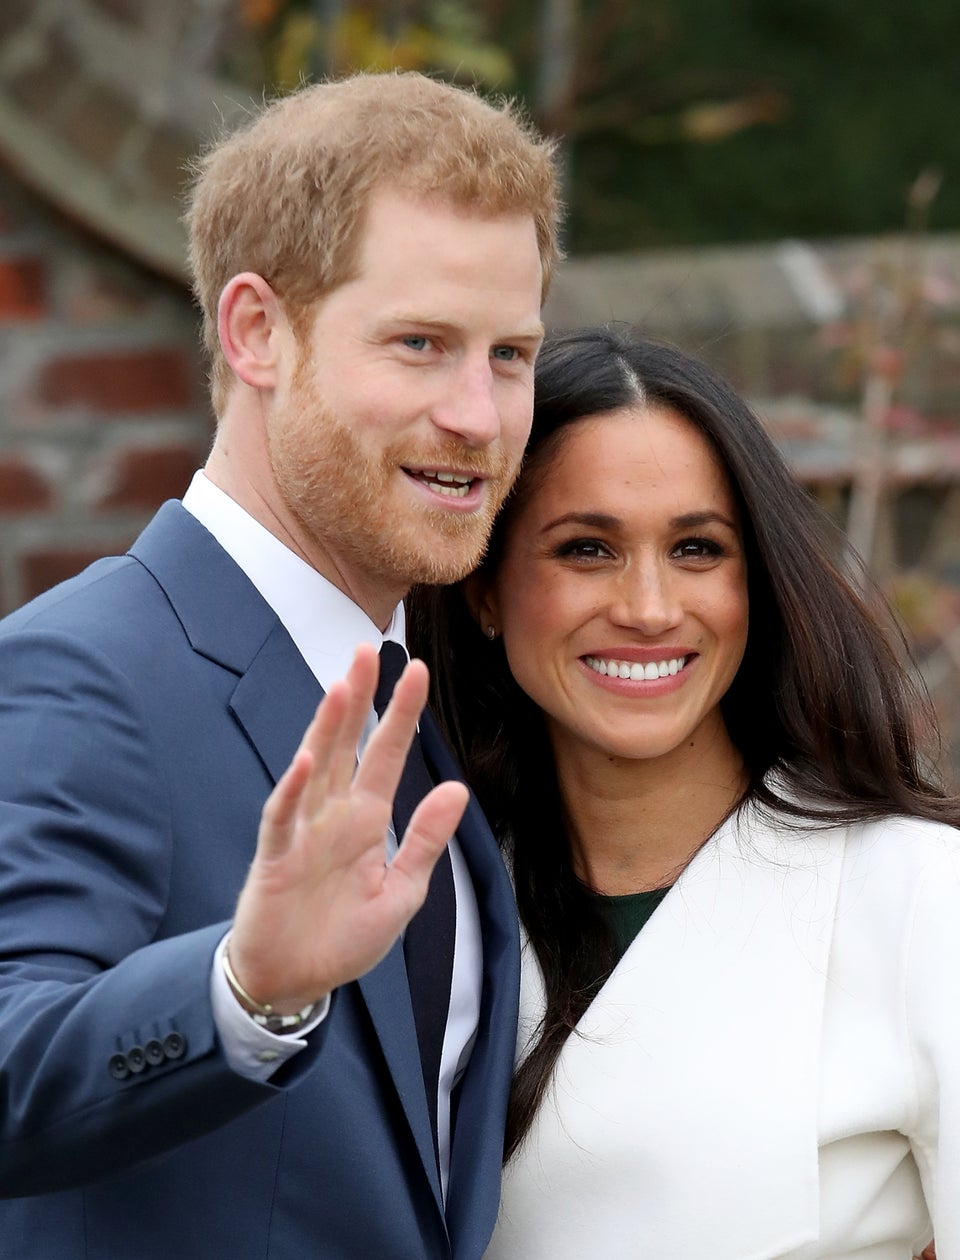 We Have a Date! Prince Harry and Meghan Markle Reveal When Their Wedding Will Take Place